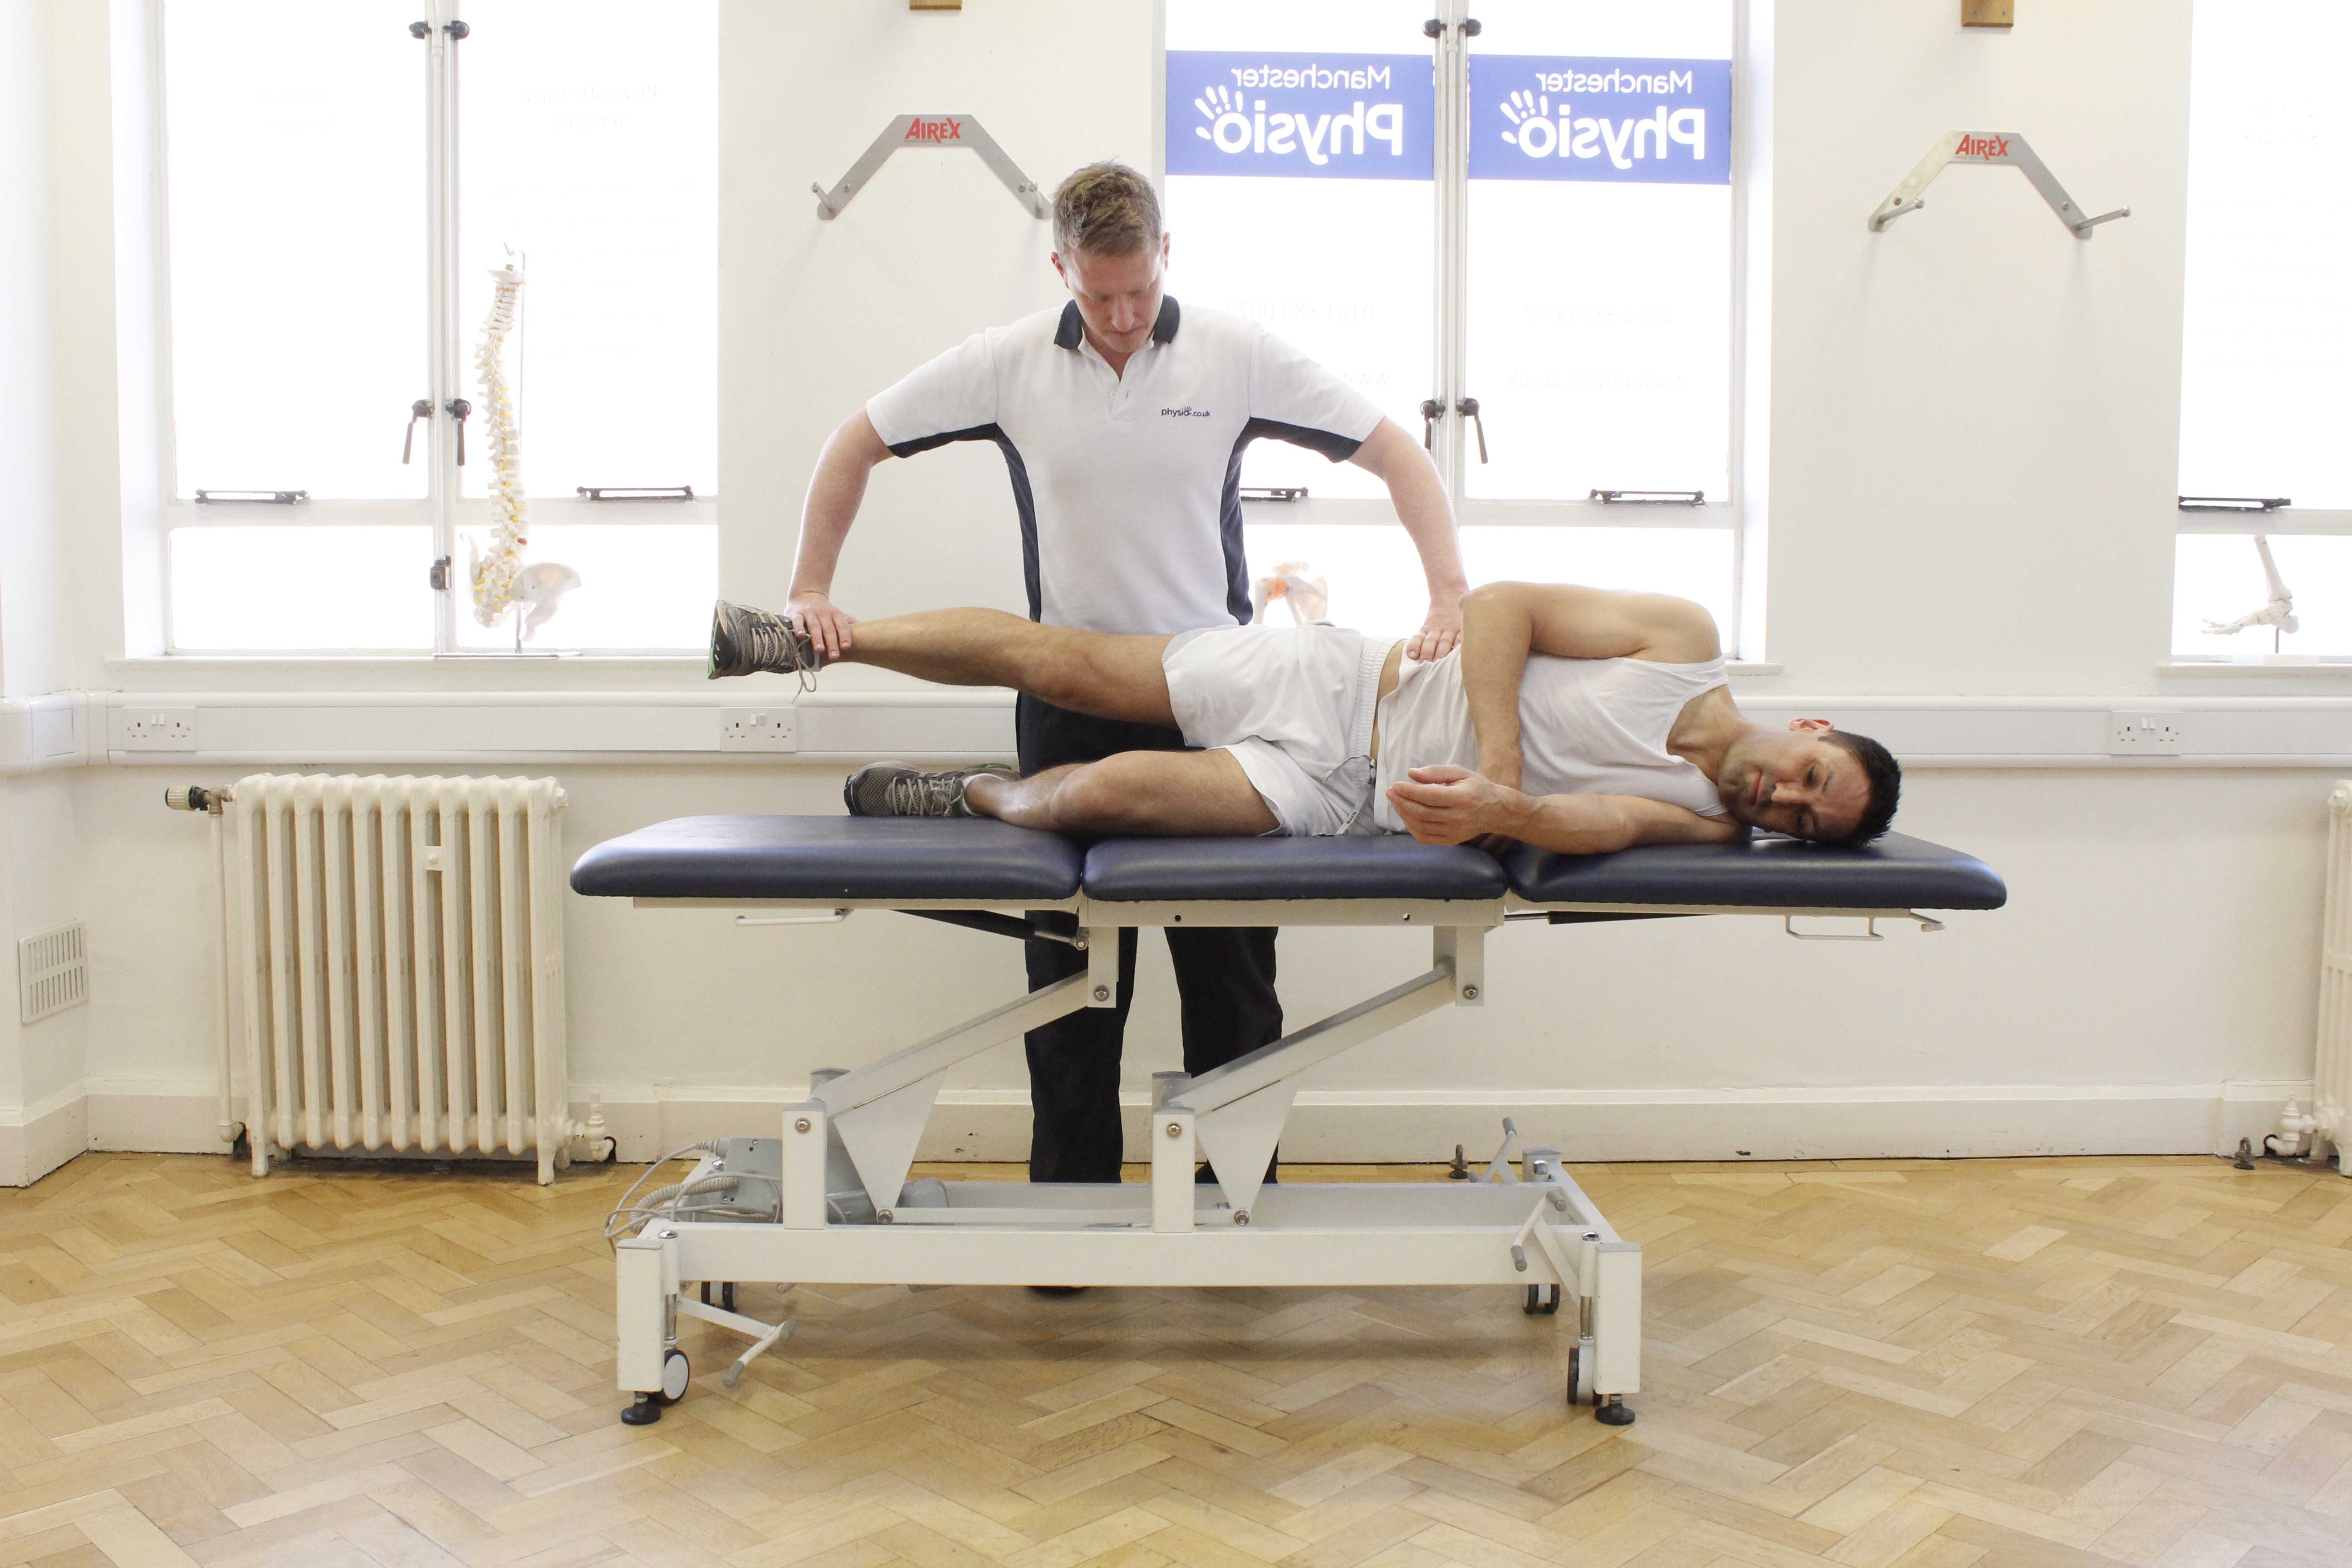 Hip abductor strengthening exercises assisted by a MSK physiotherapist